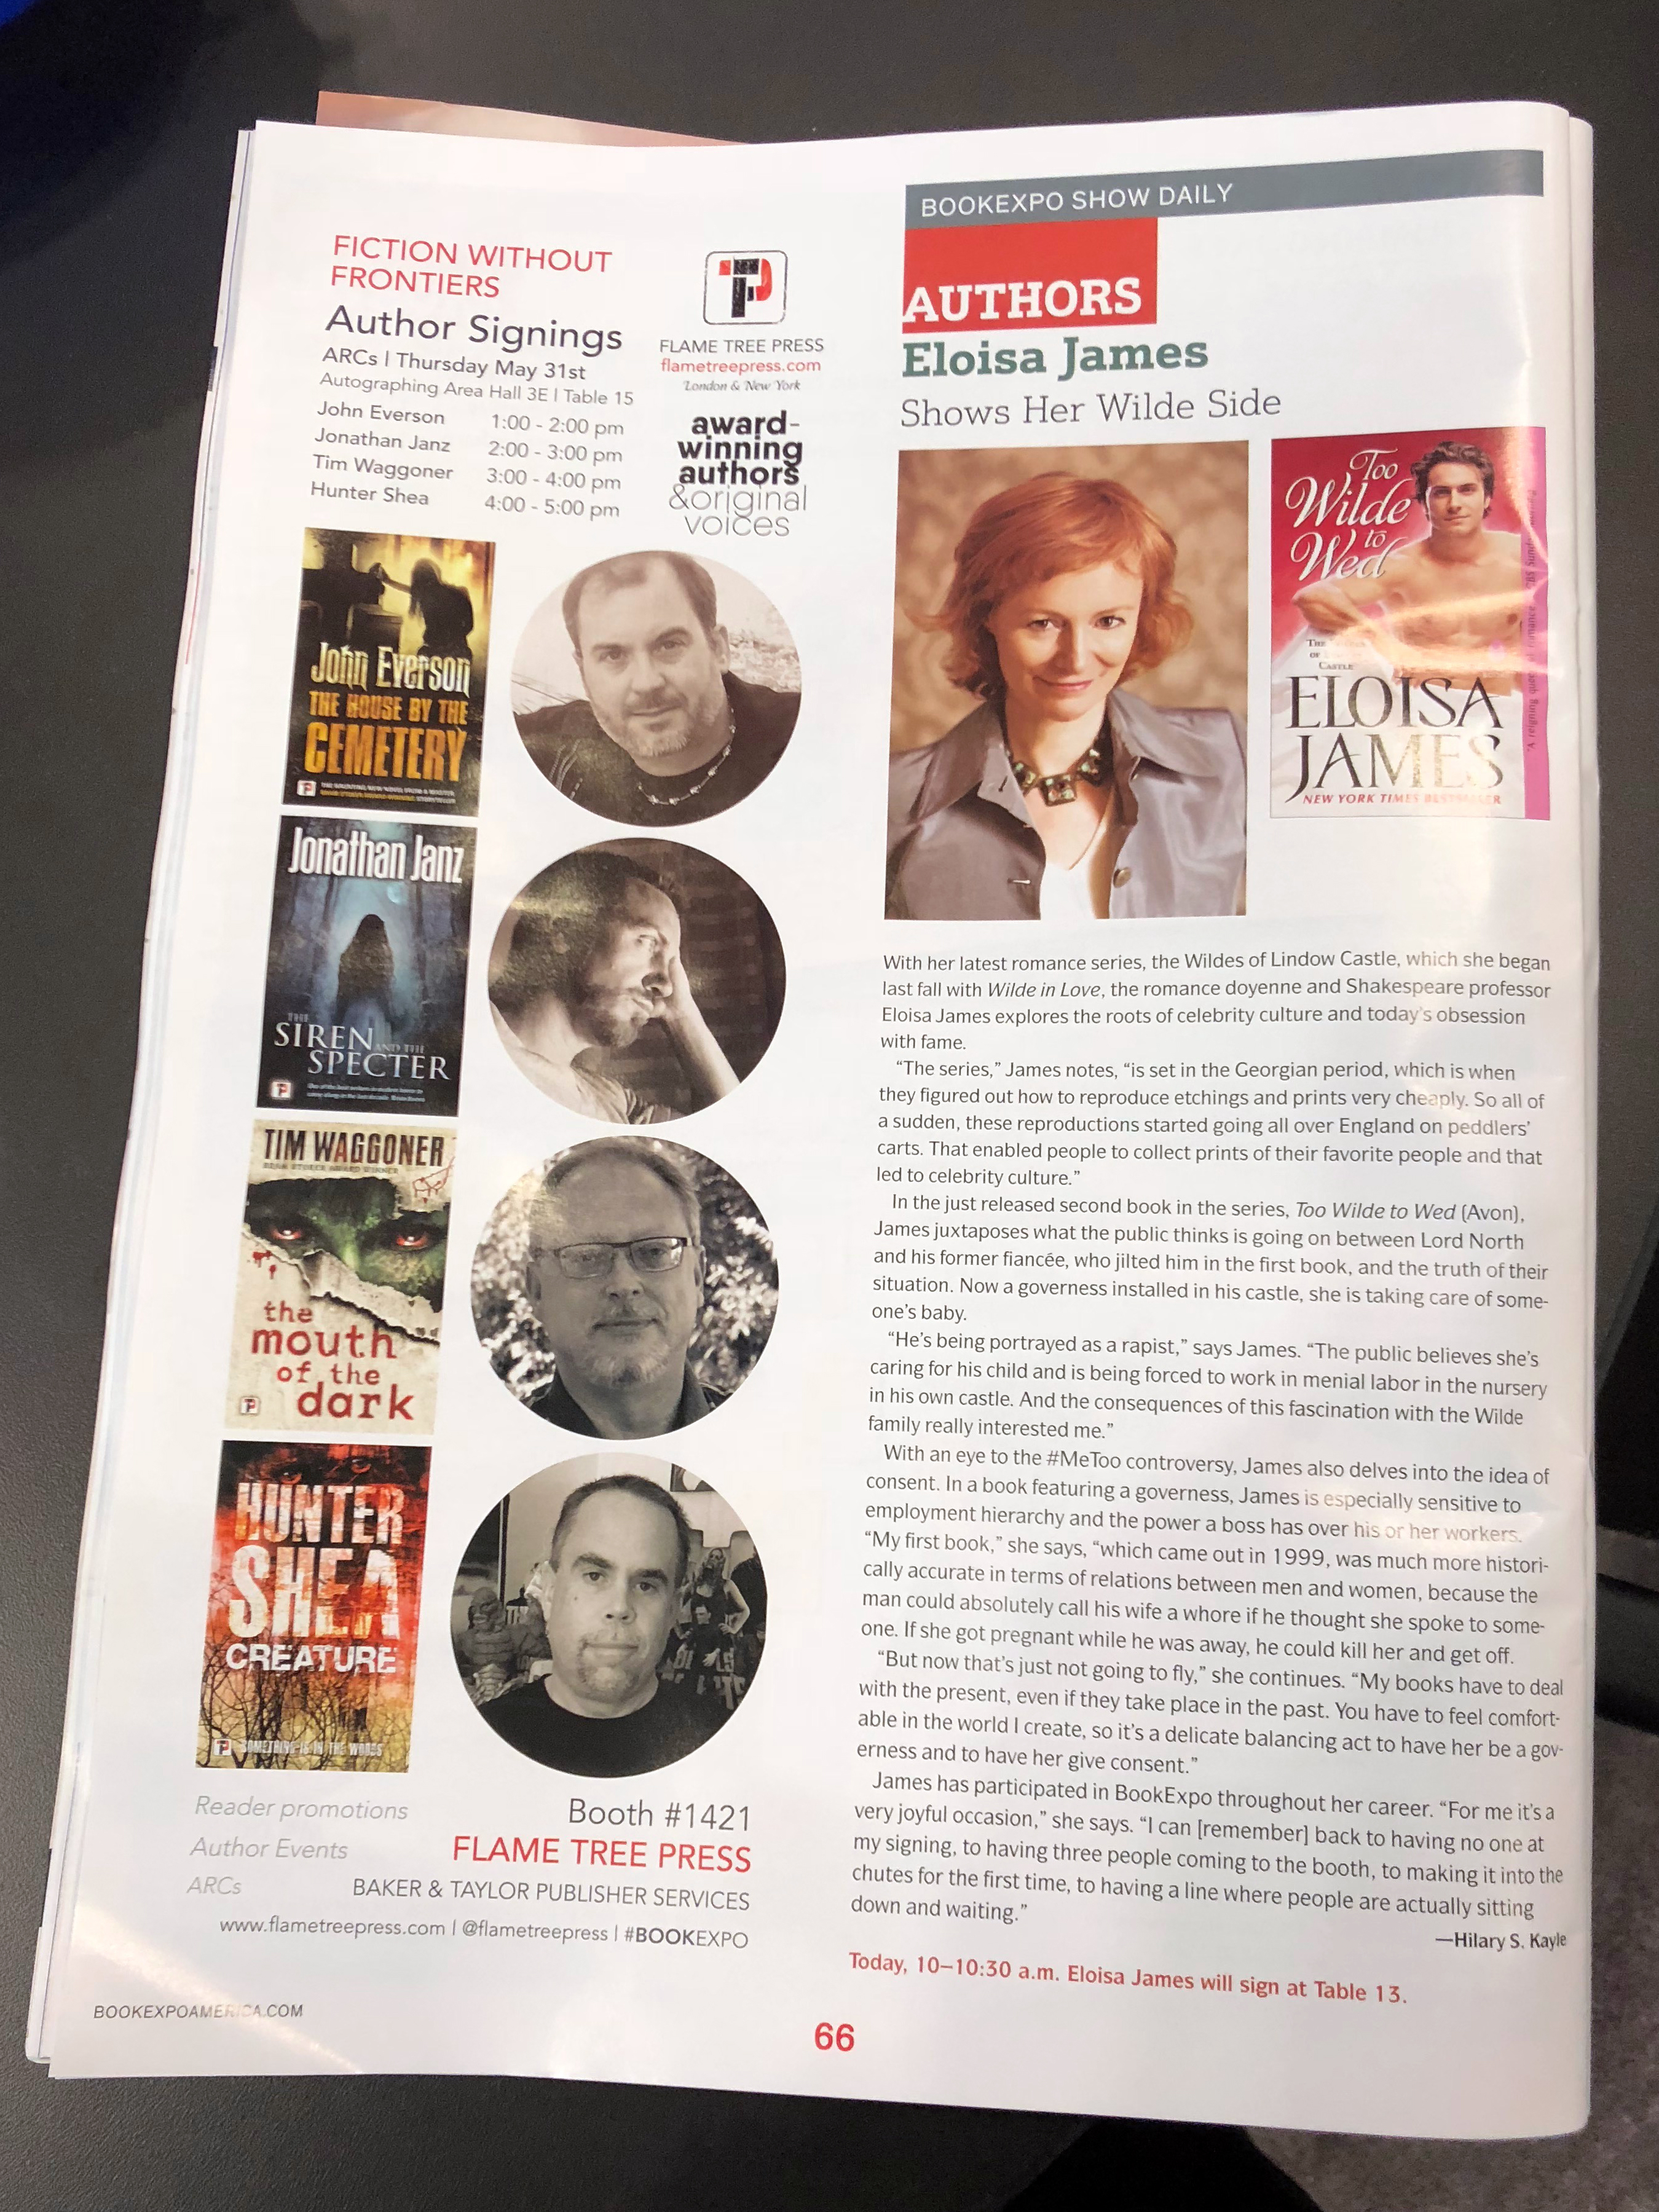 Publishers Weekly Show Daily, Flame Tree Press, at BookExpo18